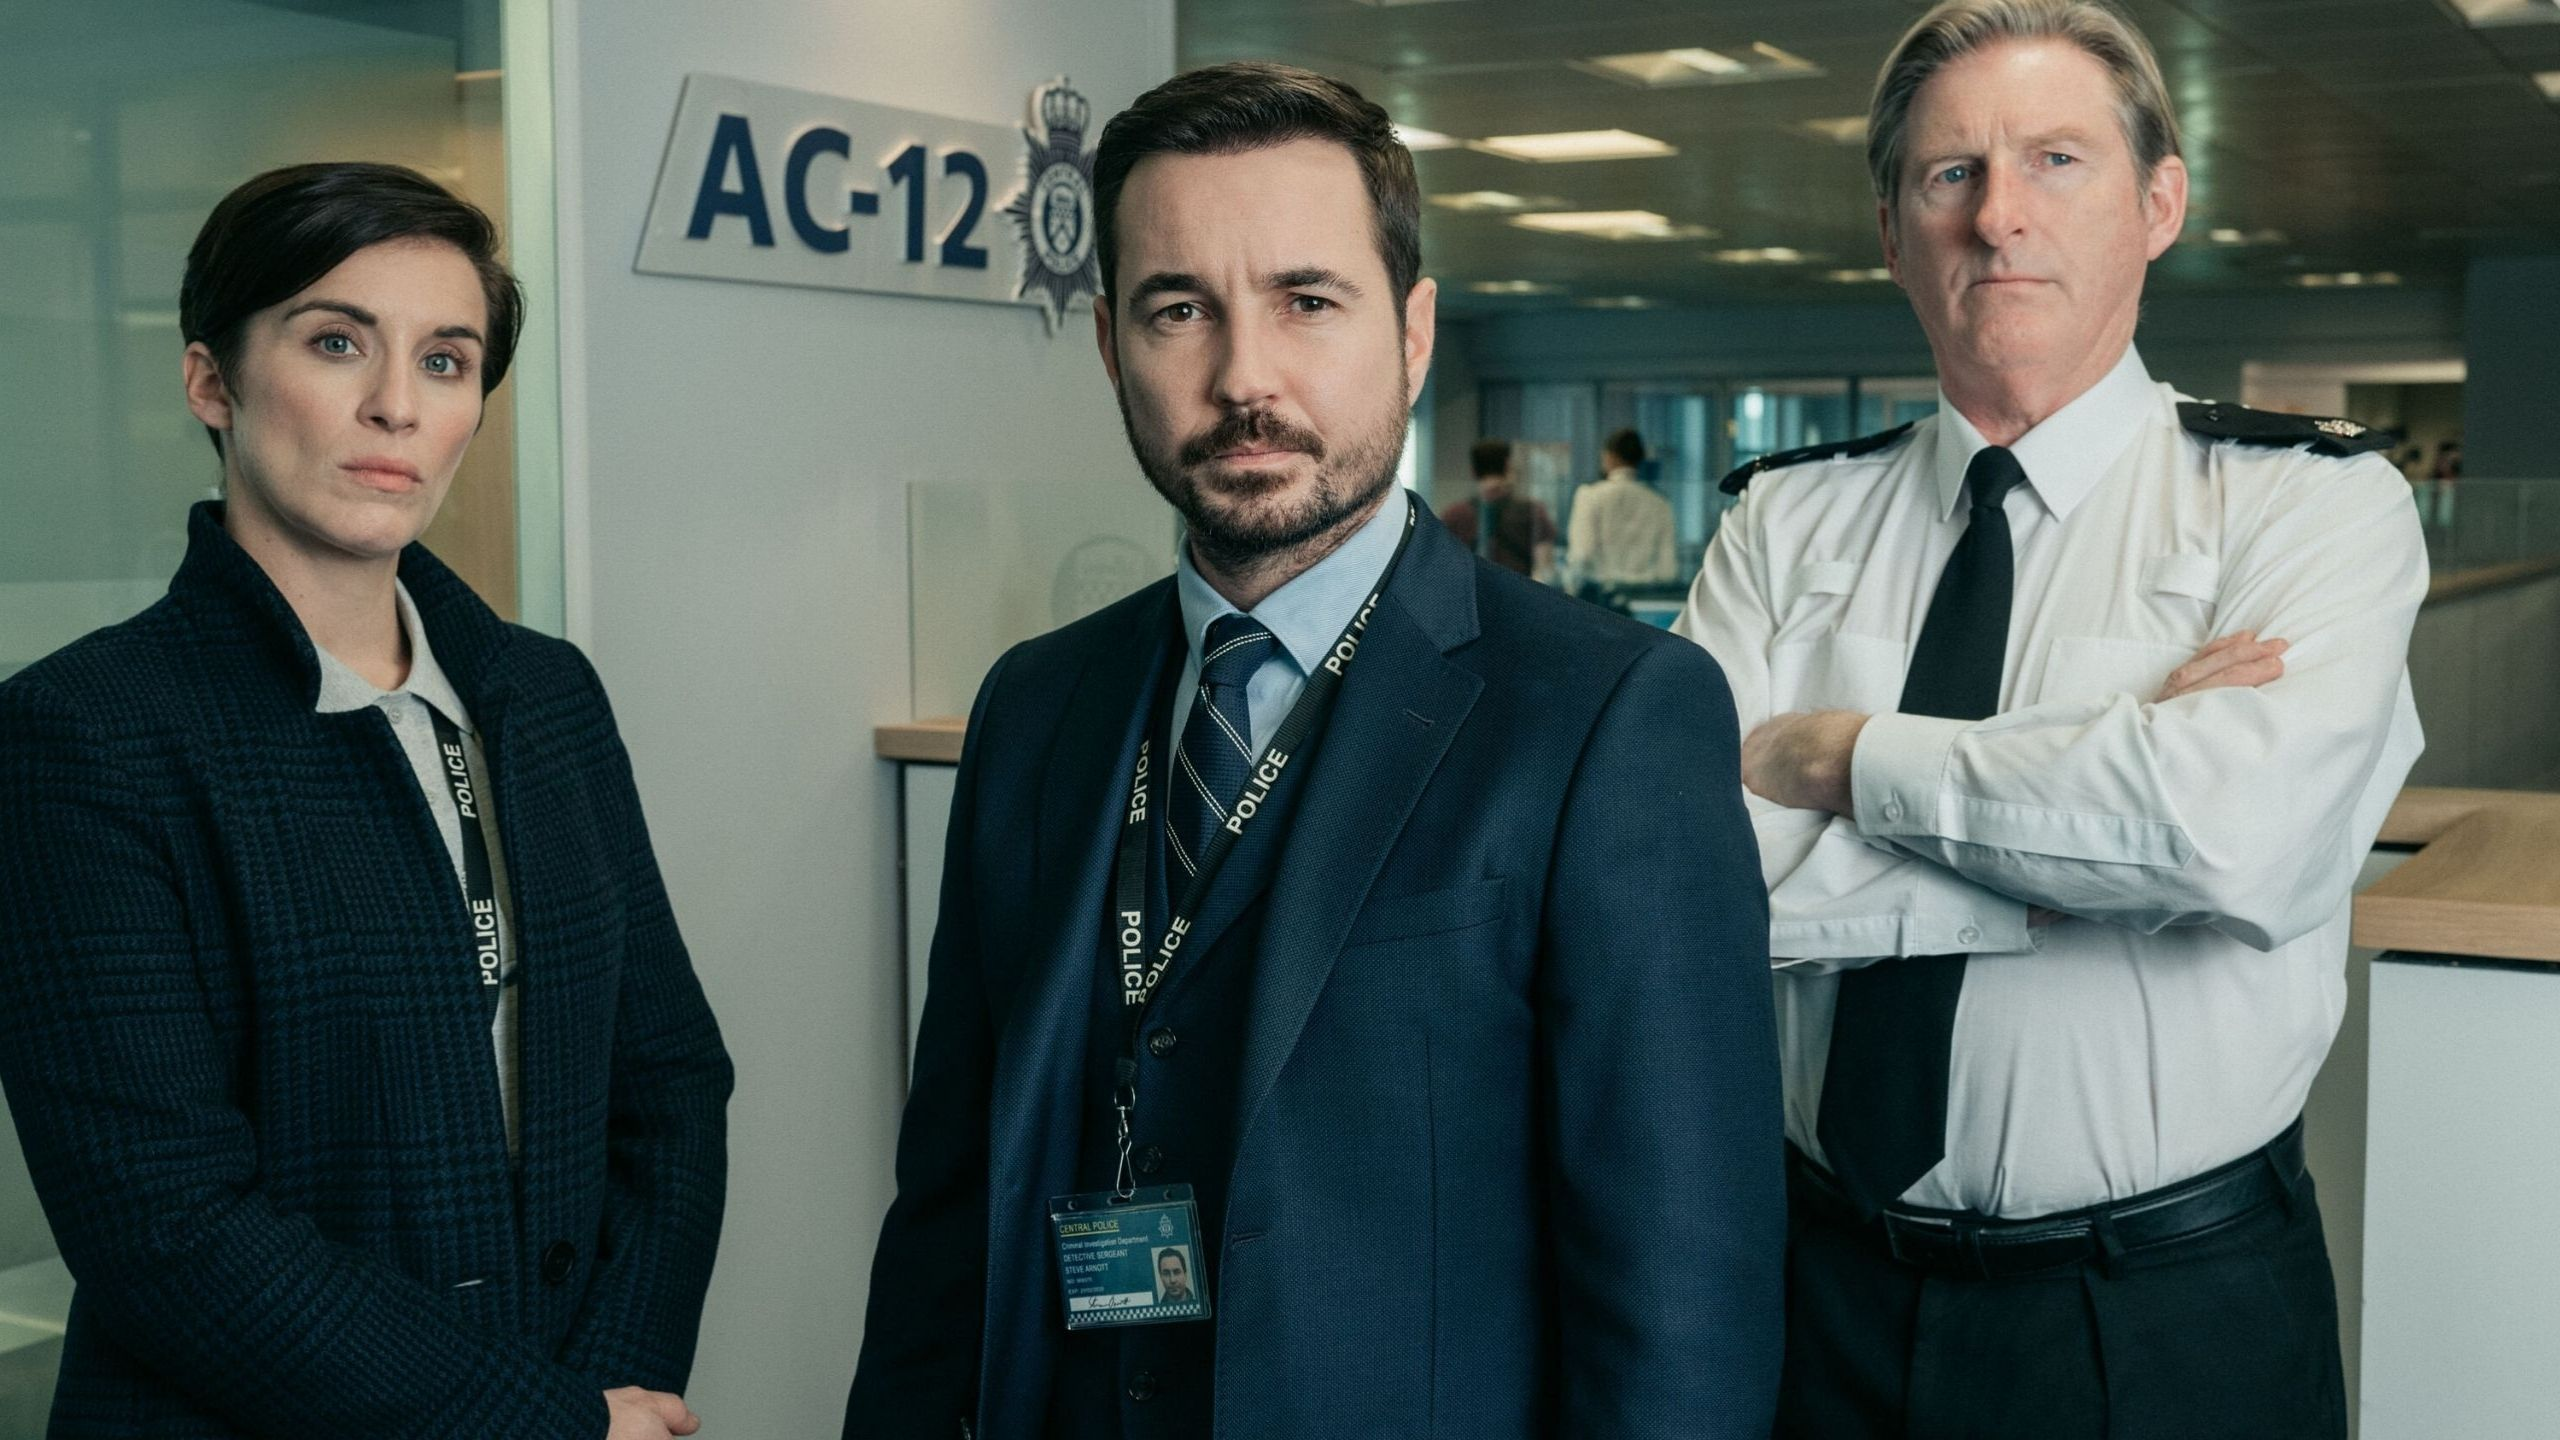 Cast of Line of Duty stood in a police department looking